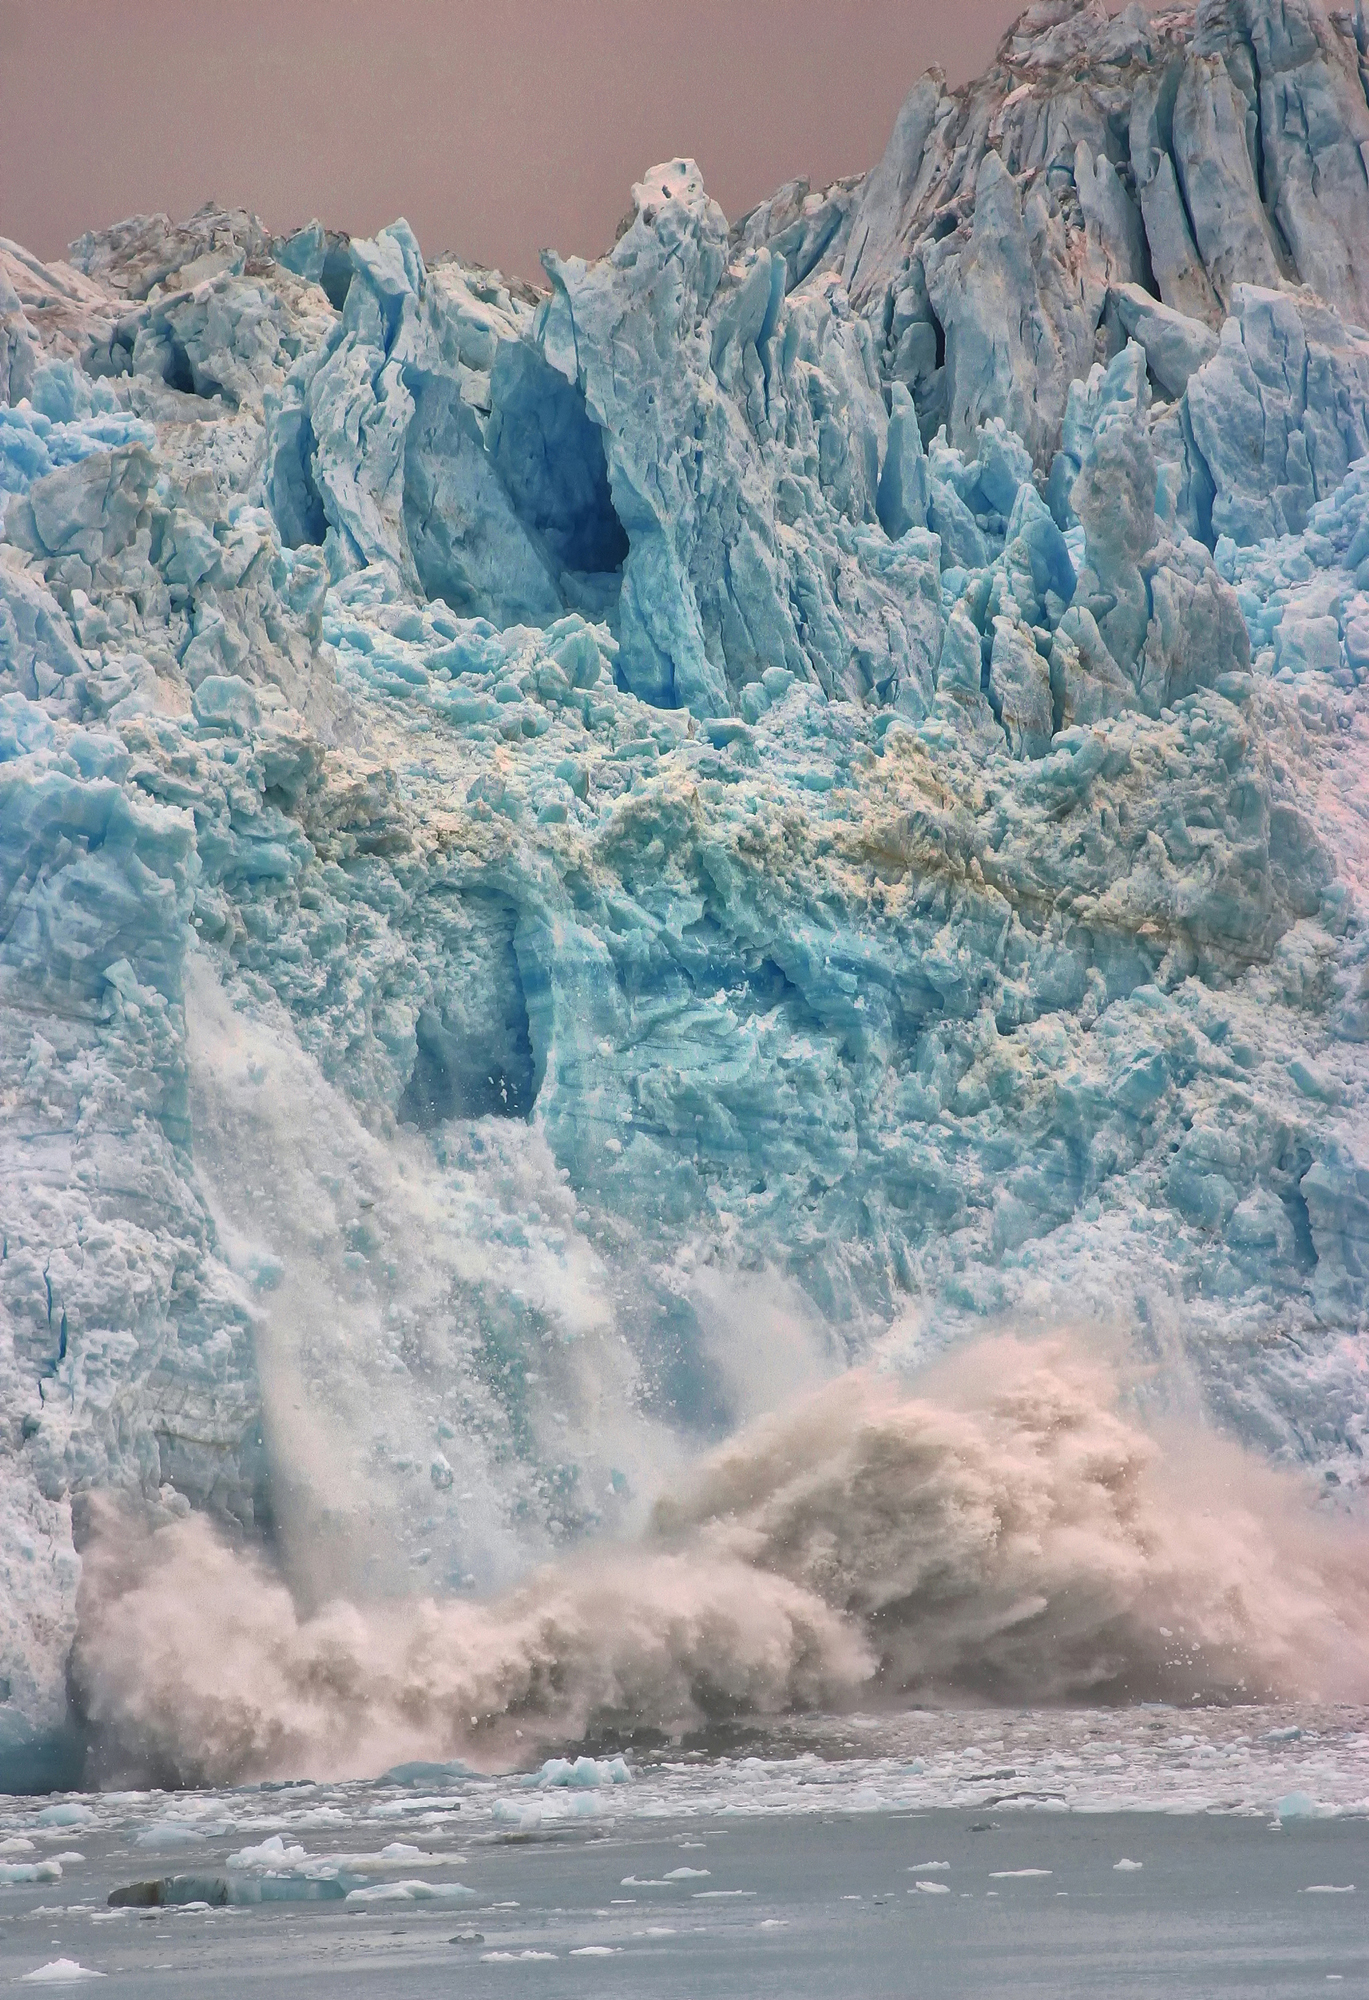 33 Barry_Greff_Glacier-Ocean_Views.jpg